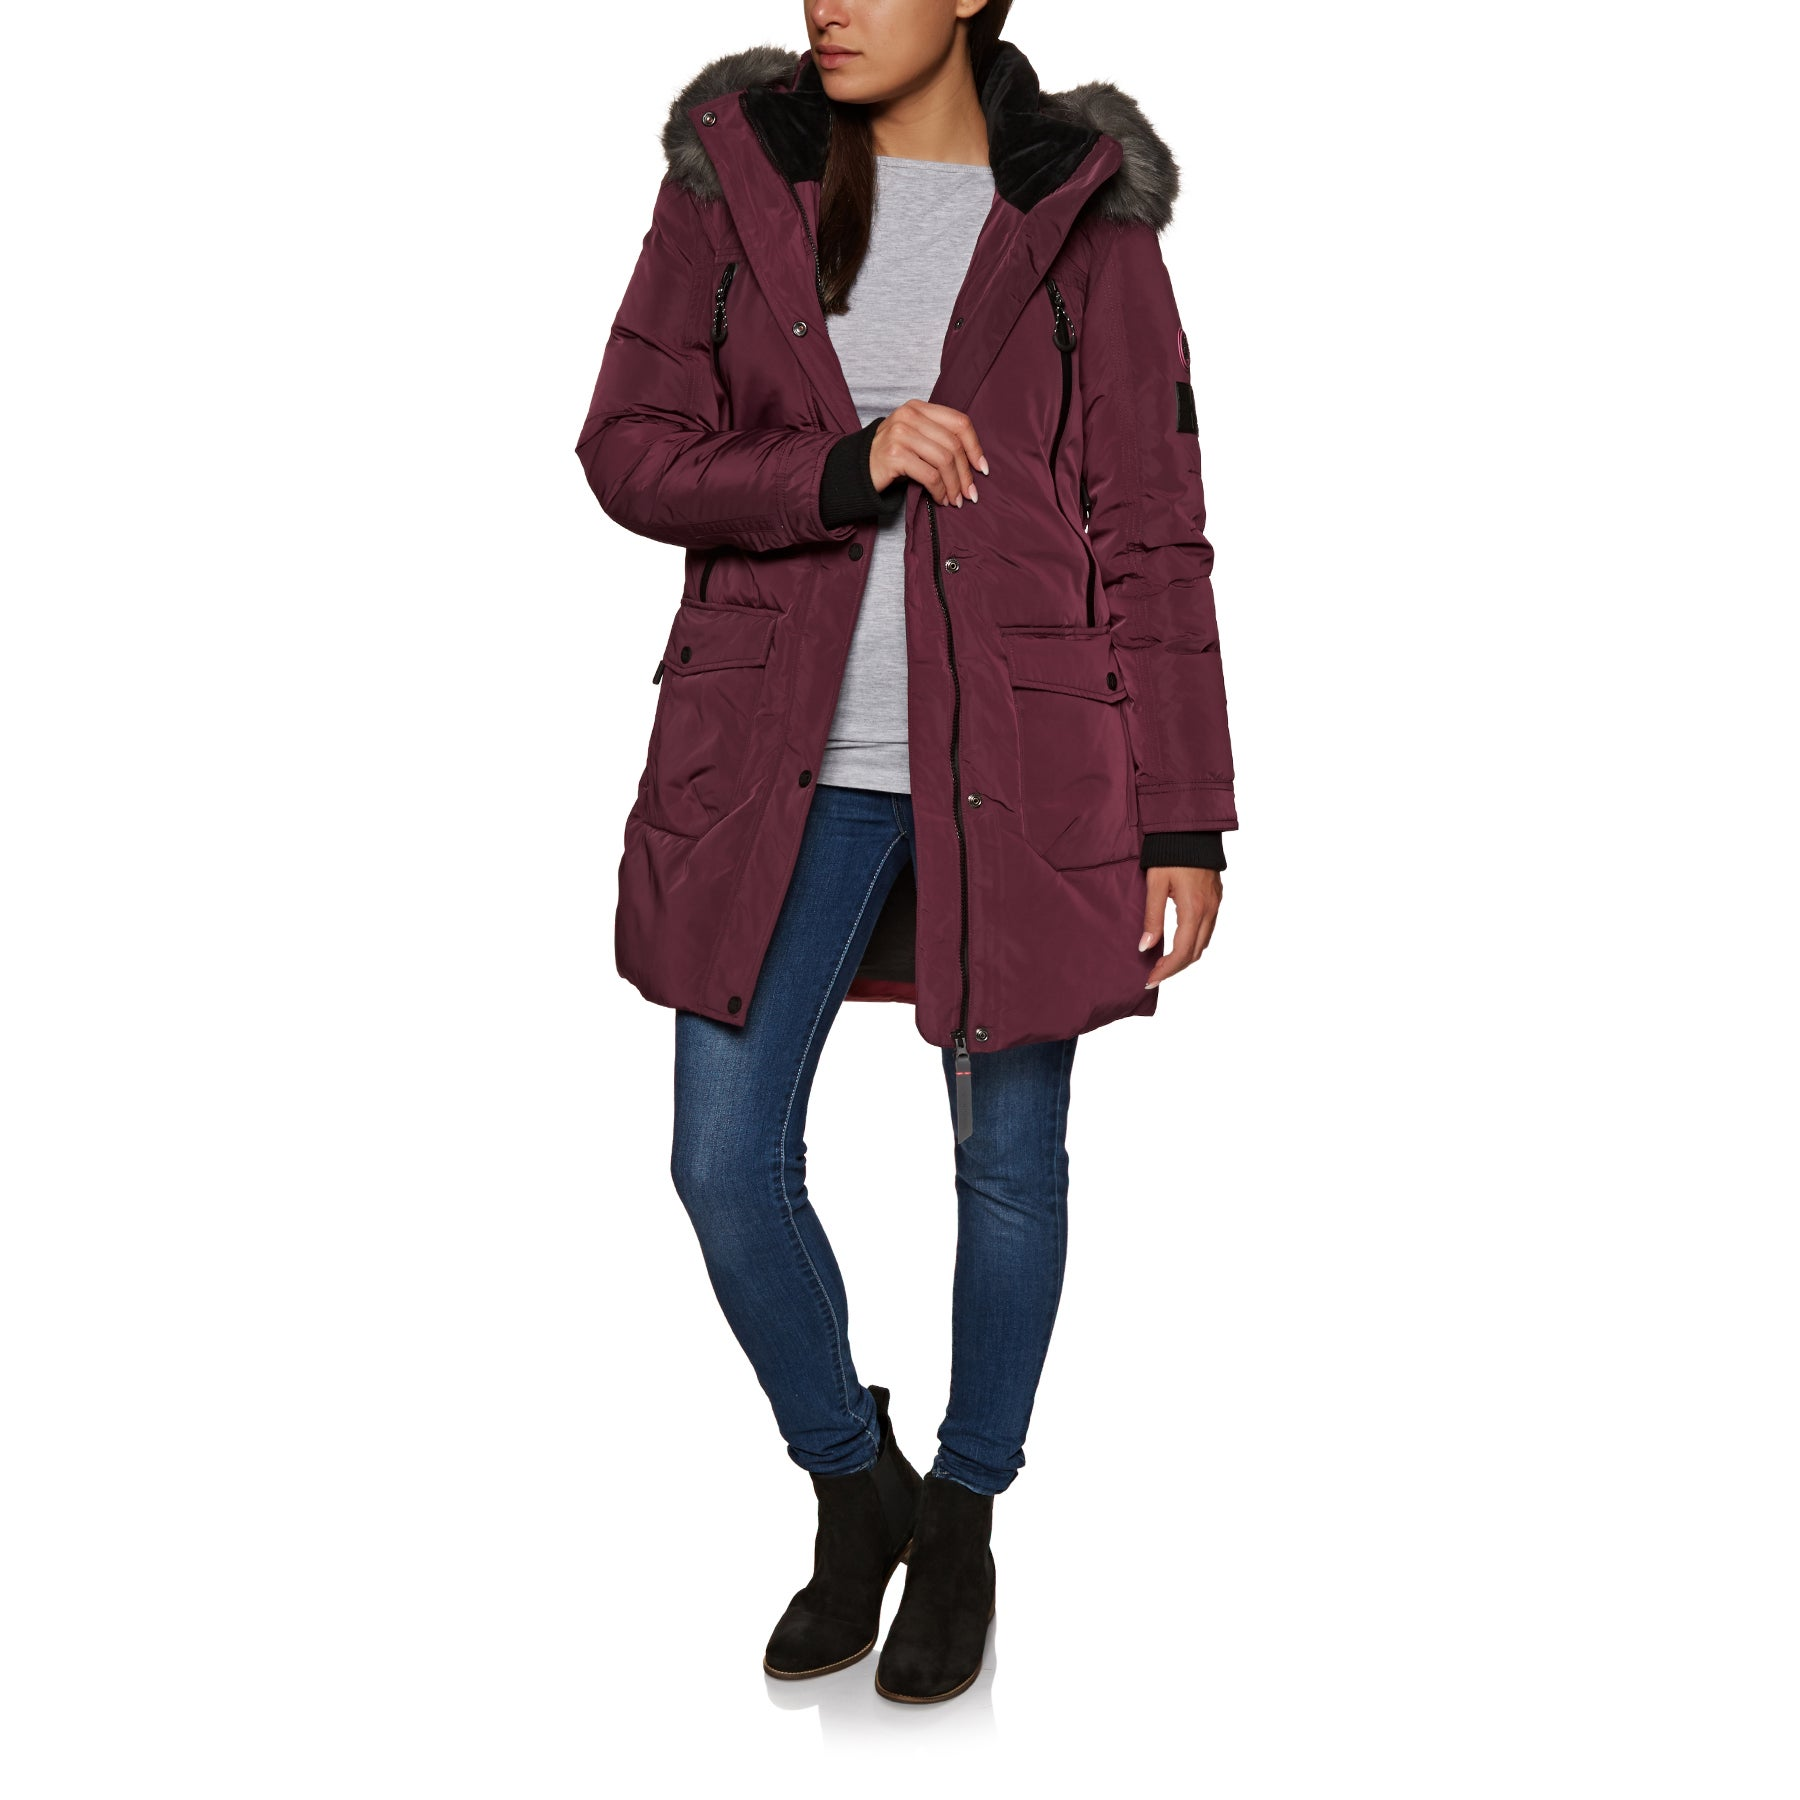 36adbe015e0 Superdry Antarctic Explorer Down Parka Womens Down Jacket available ...